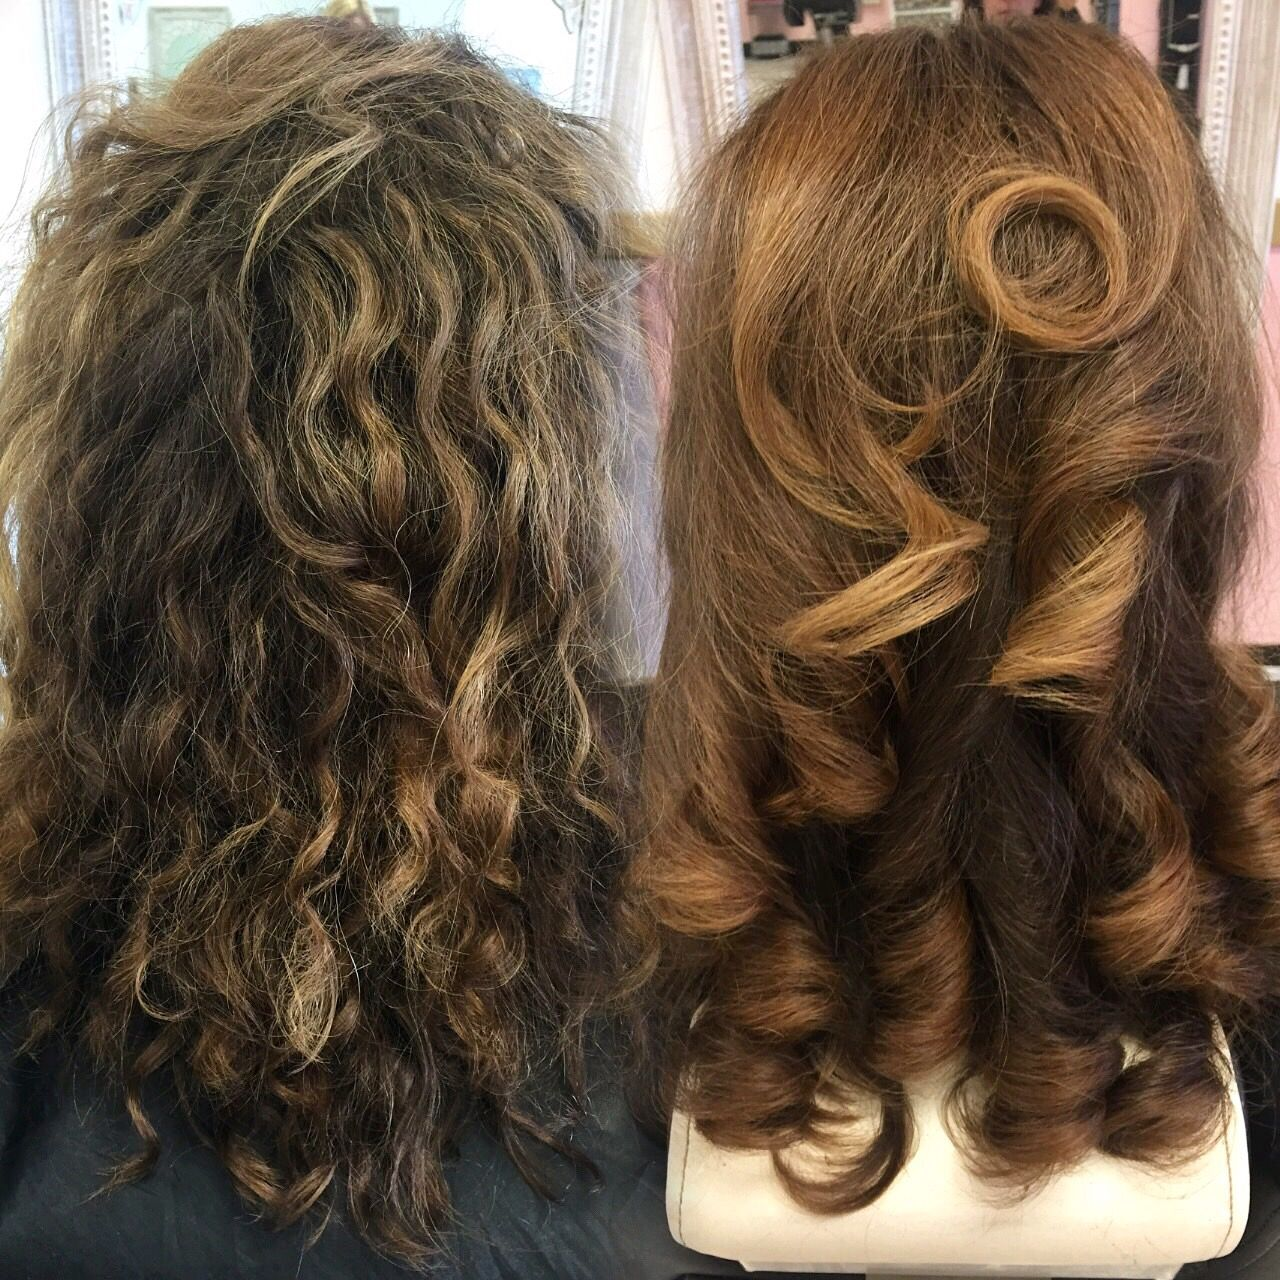 Curly Hair Blowout Blowout Hair Curly Hair Styles Naturally Curly Blowdry